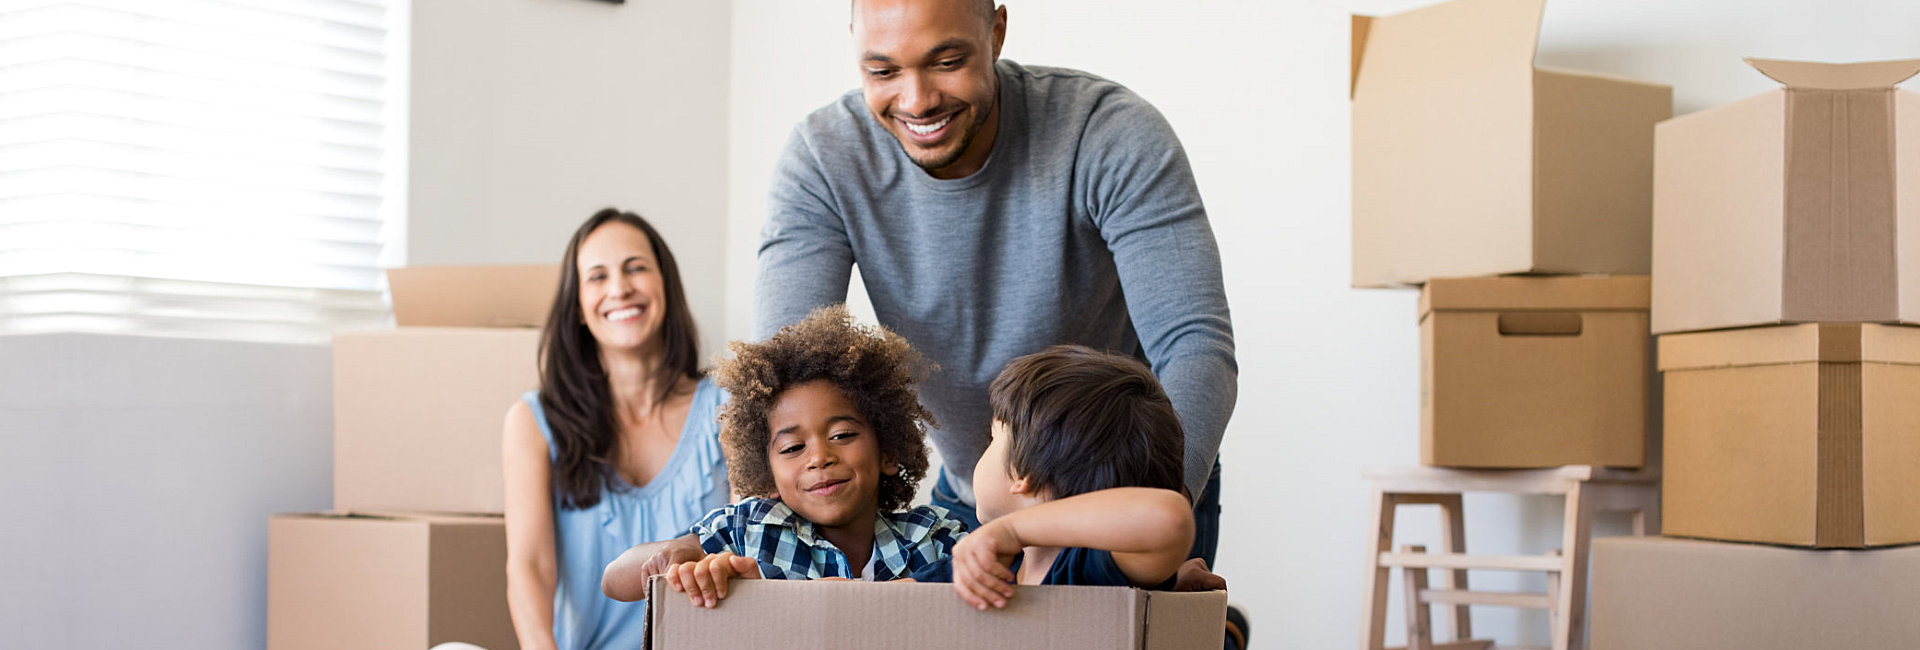 family happily playing on box